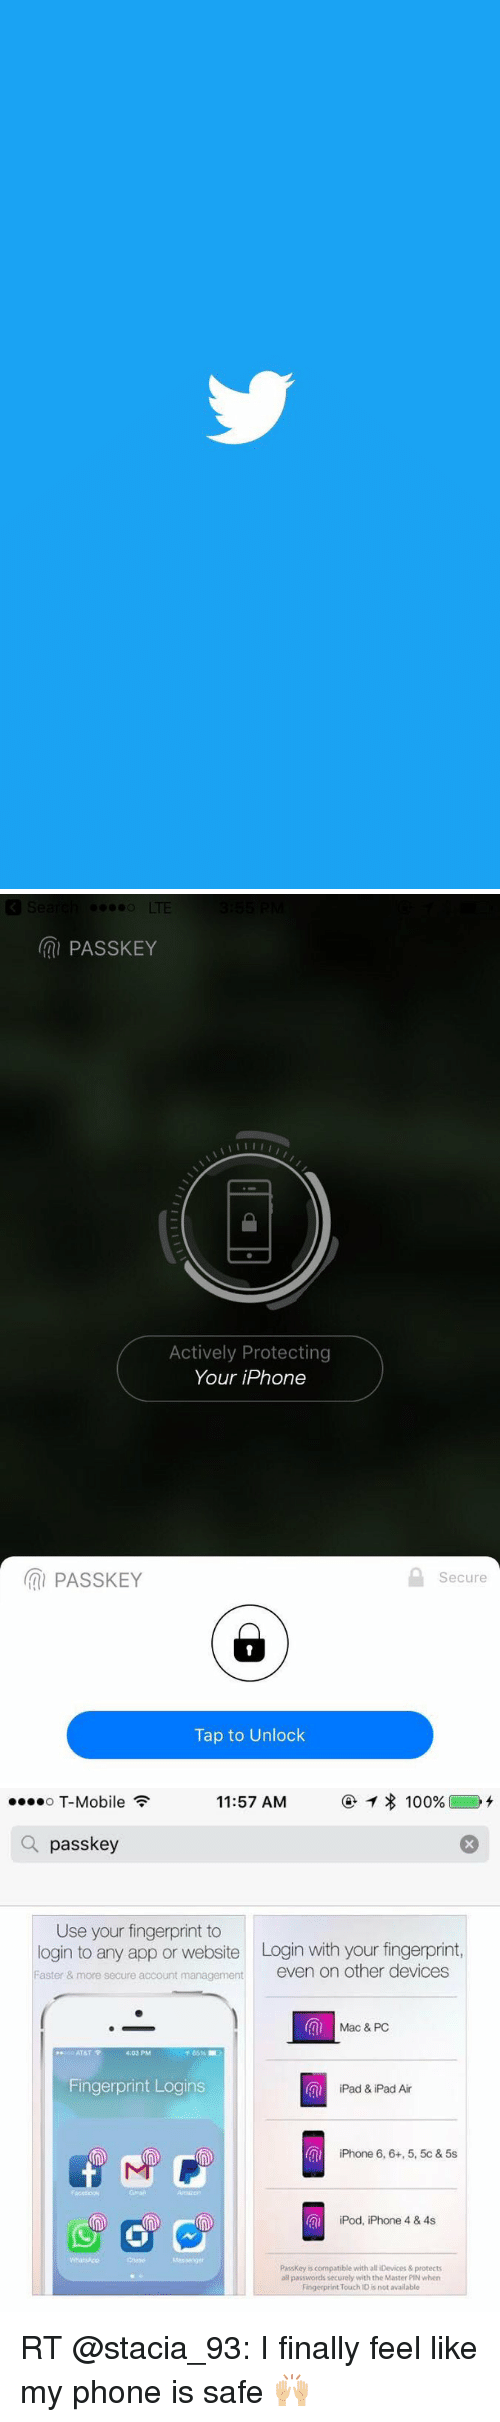 PAssKEY Actively Protecting Your iPhone Tap to Unlock Secure